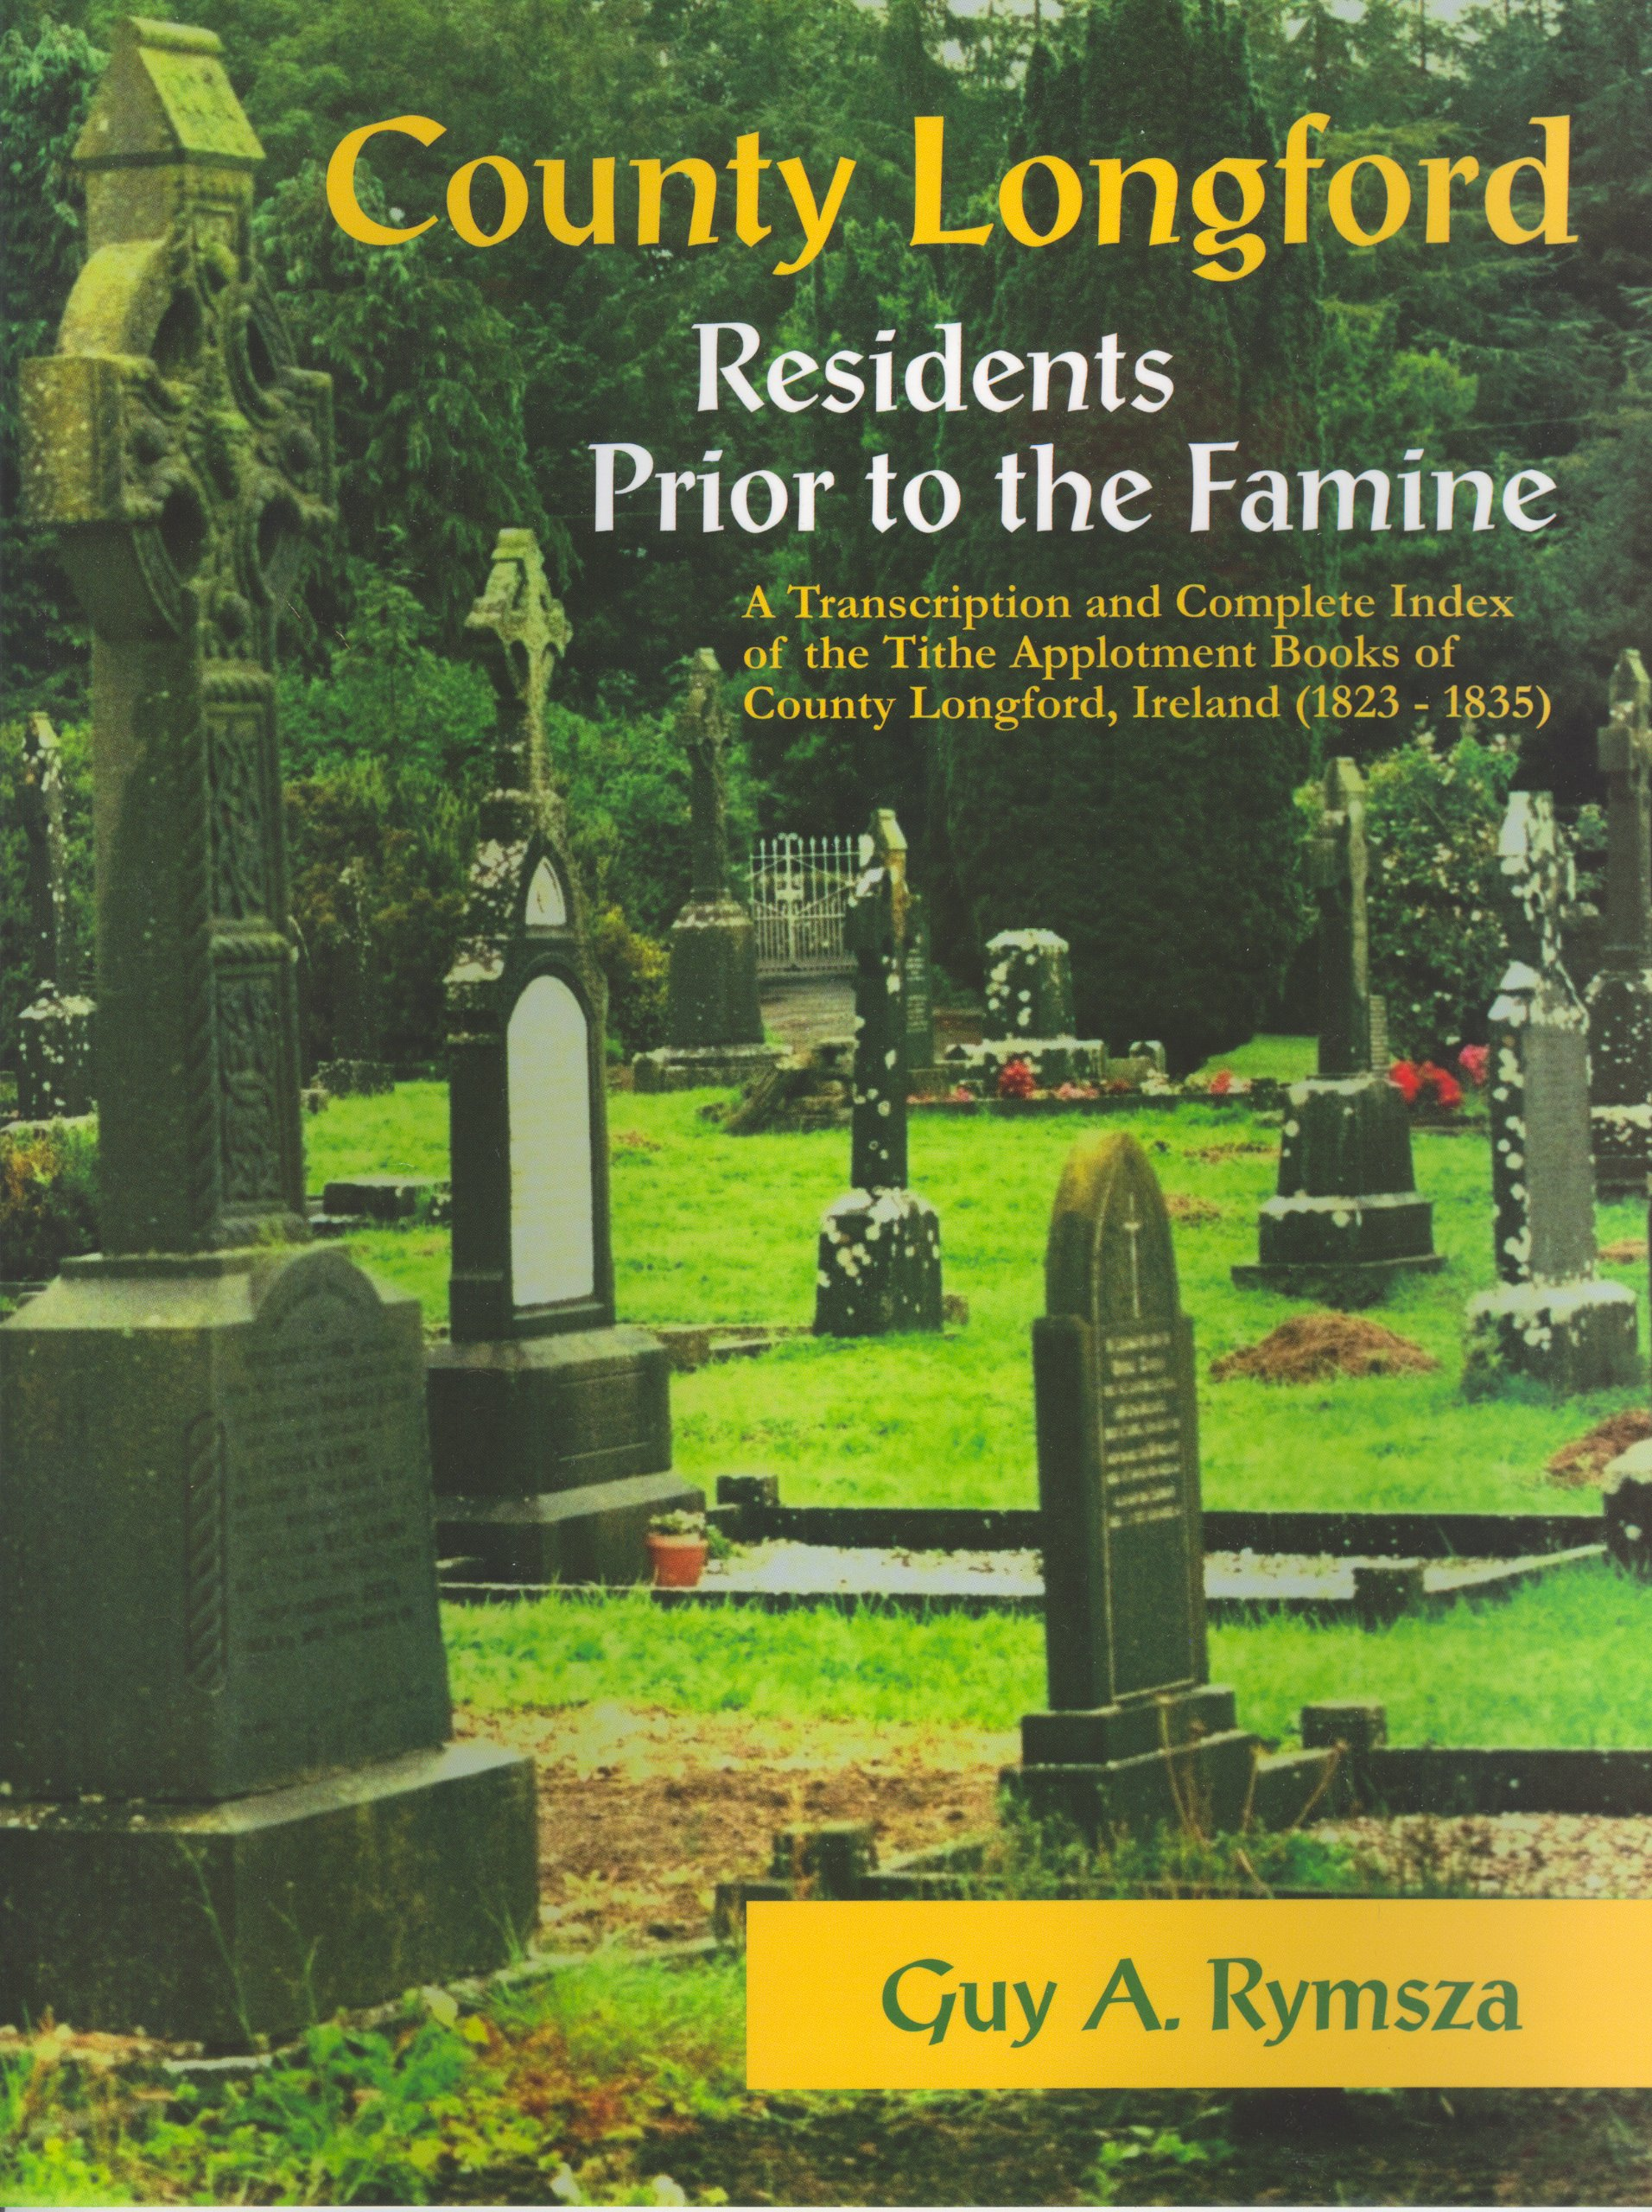 Read Online County Longford Residents Prior to the Famine: A Transcription And Complete Index of the Tithe Applotment Books of County Longford, Ireland (1823 - 1835) pdf epub